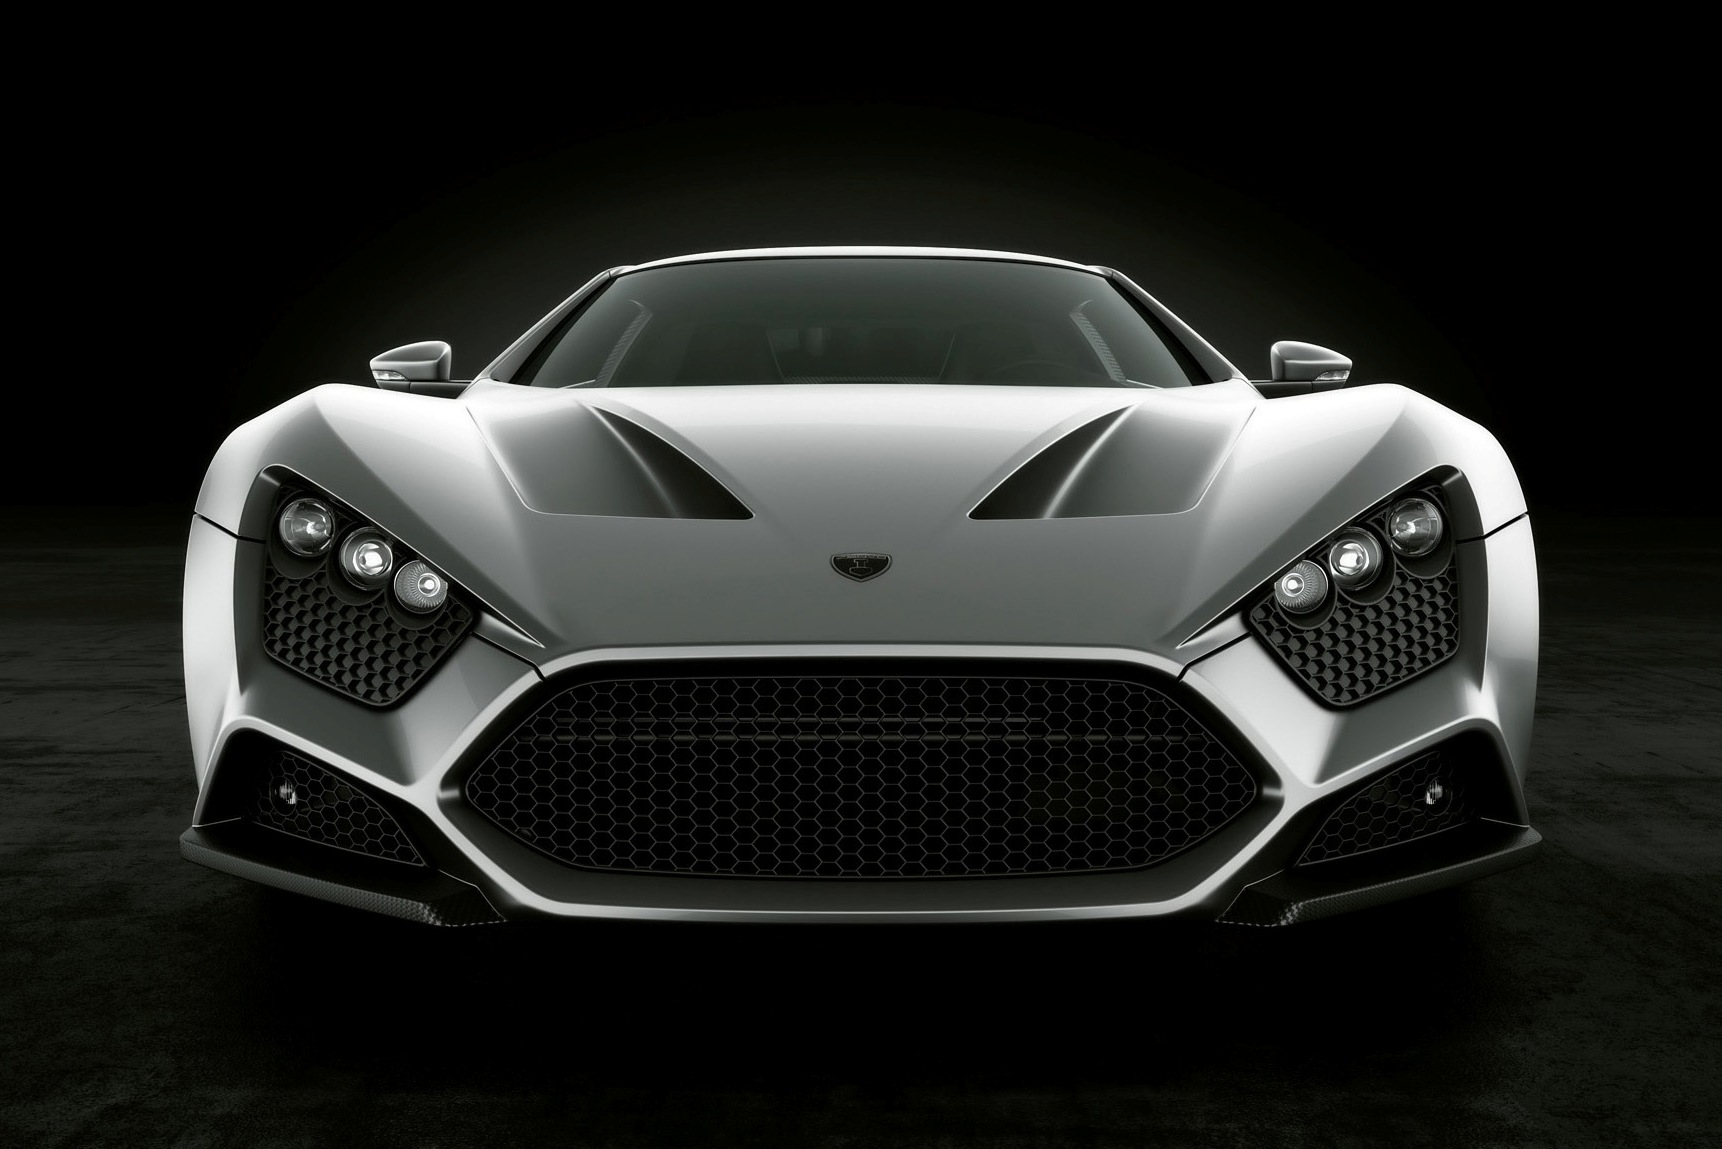 Darth Vader would drive this: the Zenvo ST1 | My Car Heaven